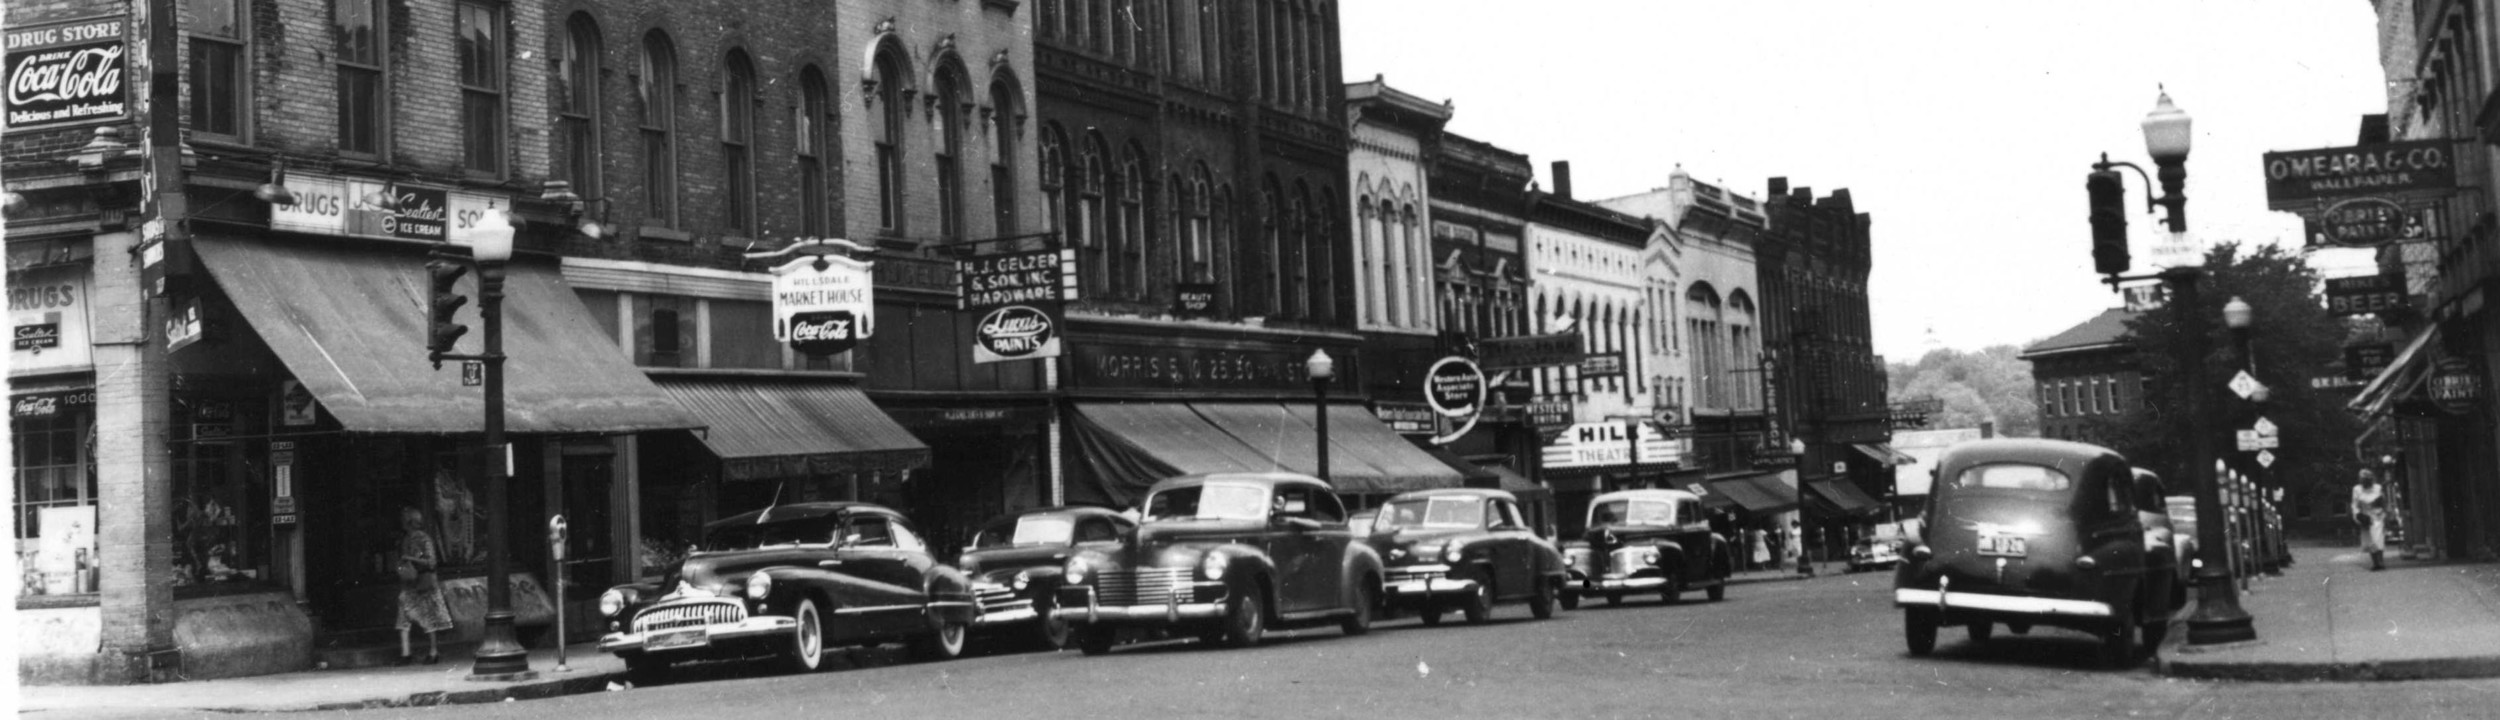 You can see the drugstore on the corner, Hillsdale Market house, O'Meara's,and Gelzer's.